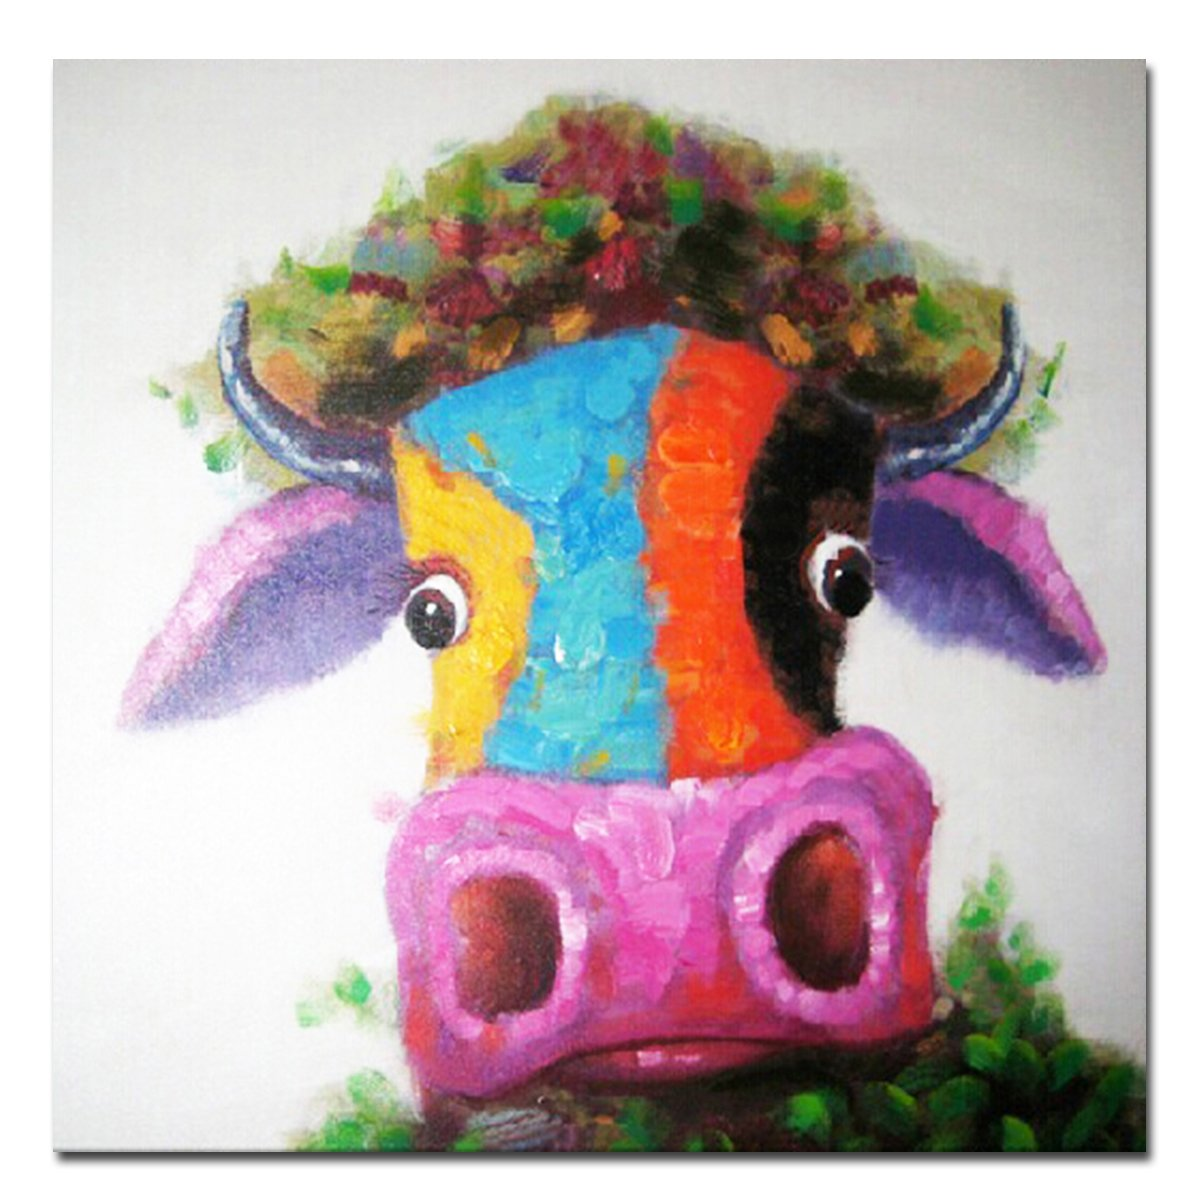 Muzagroo Art Cow Oil Paintings Modern Art Handpainted on Canvas Wall Decor Art 24x24in